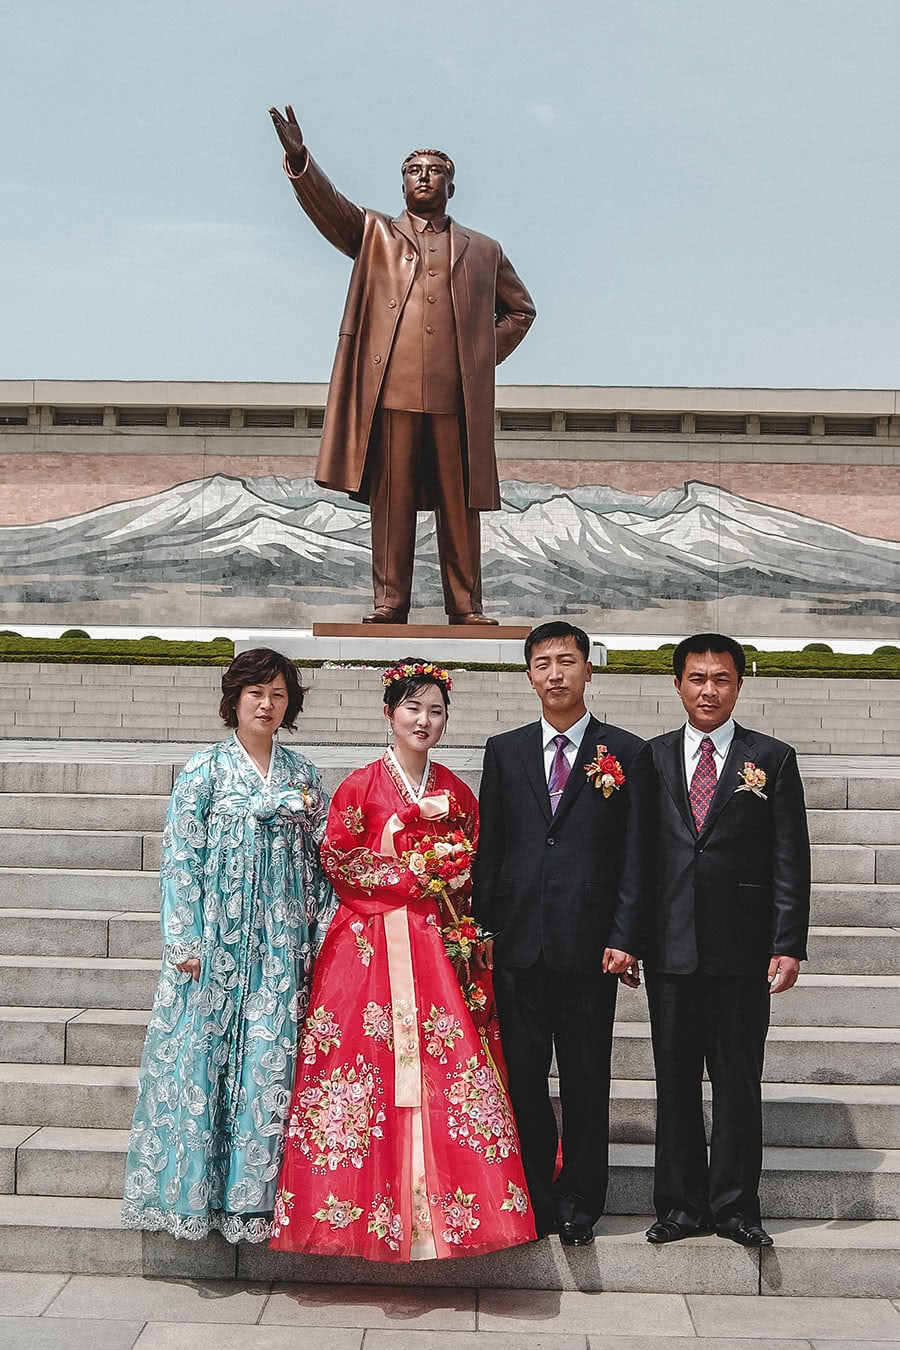 A newly married couple poses for photos in front of a statue of the Dear Leader, Kim Il-Sung in Pyongyang.